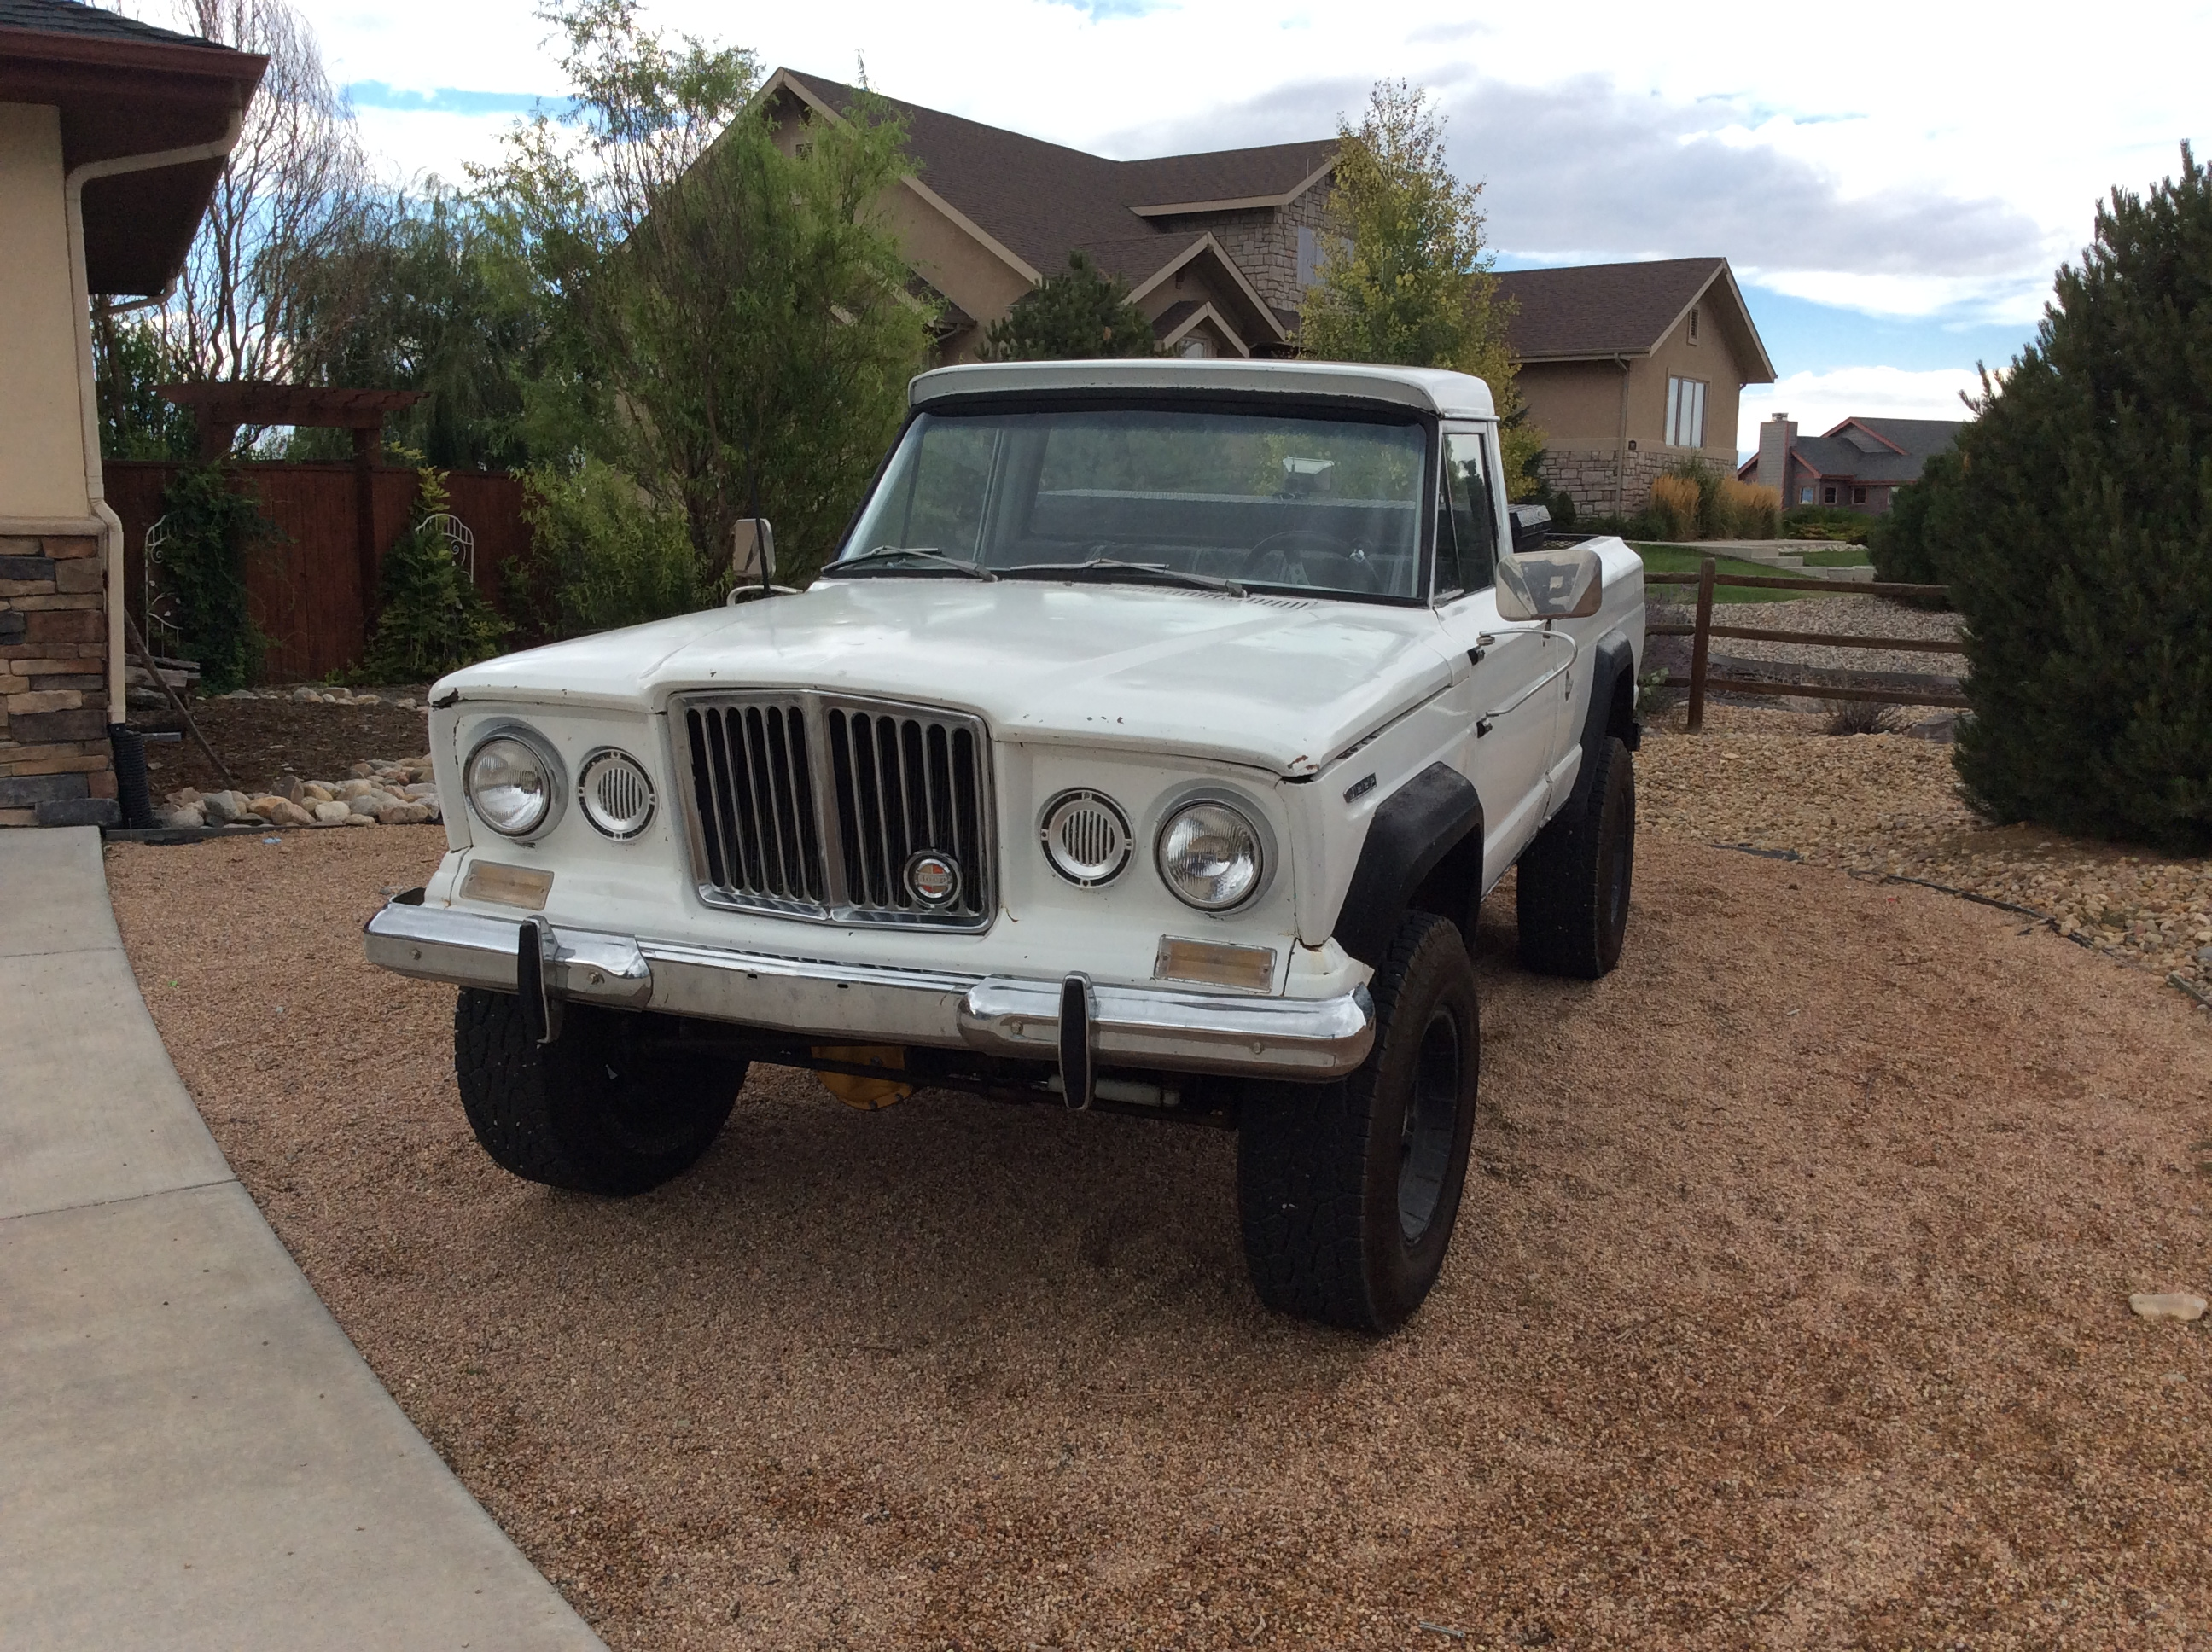 Curbside Classic 1967 Jeep Gladiator J3000 – The Truck The Future